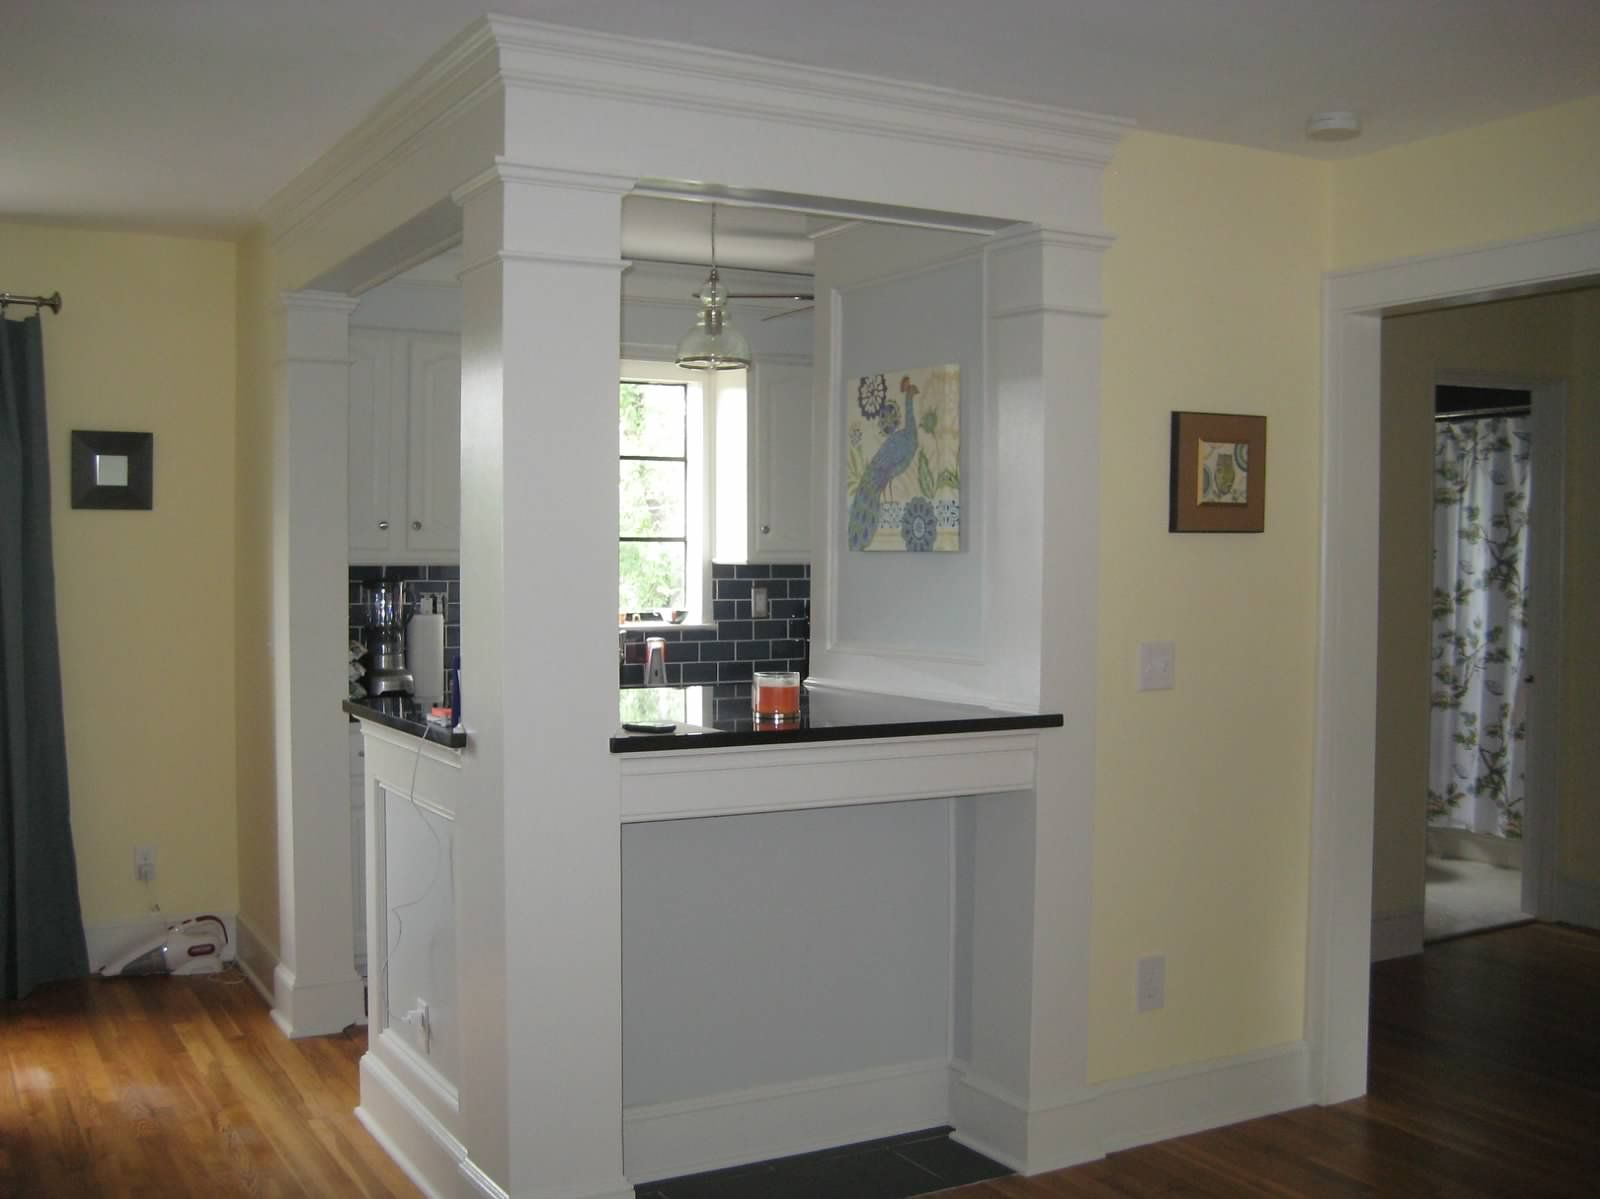 Galley Kitchen Designs With Breakfast Bar galley kitchen turned into breakfast bar | home | pinterest